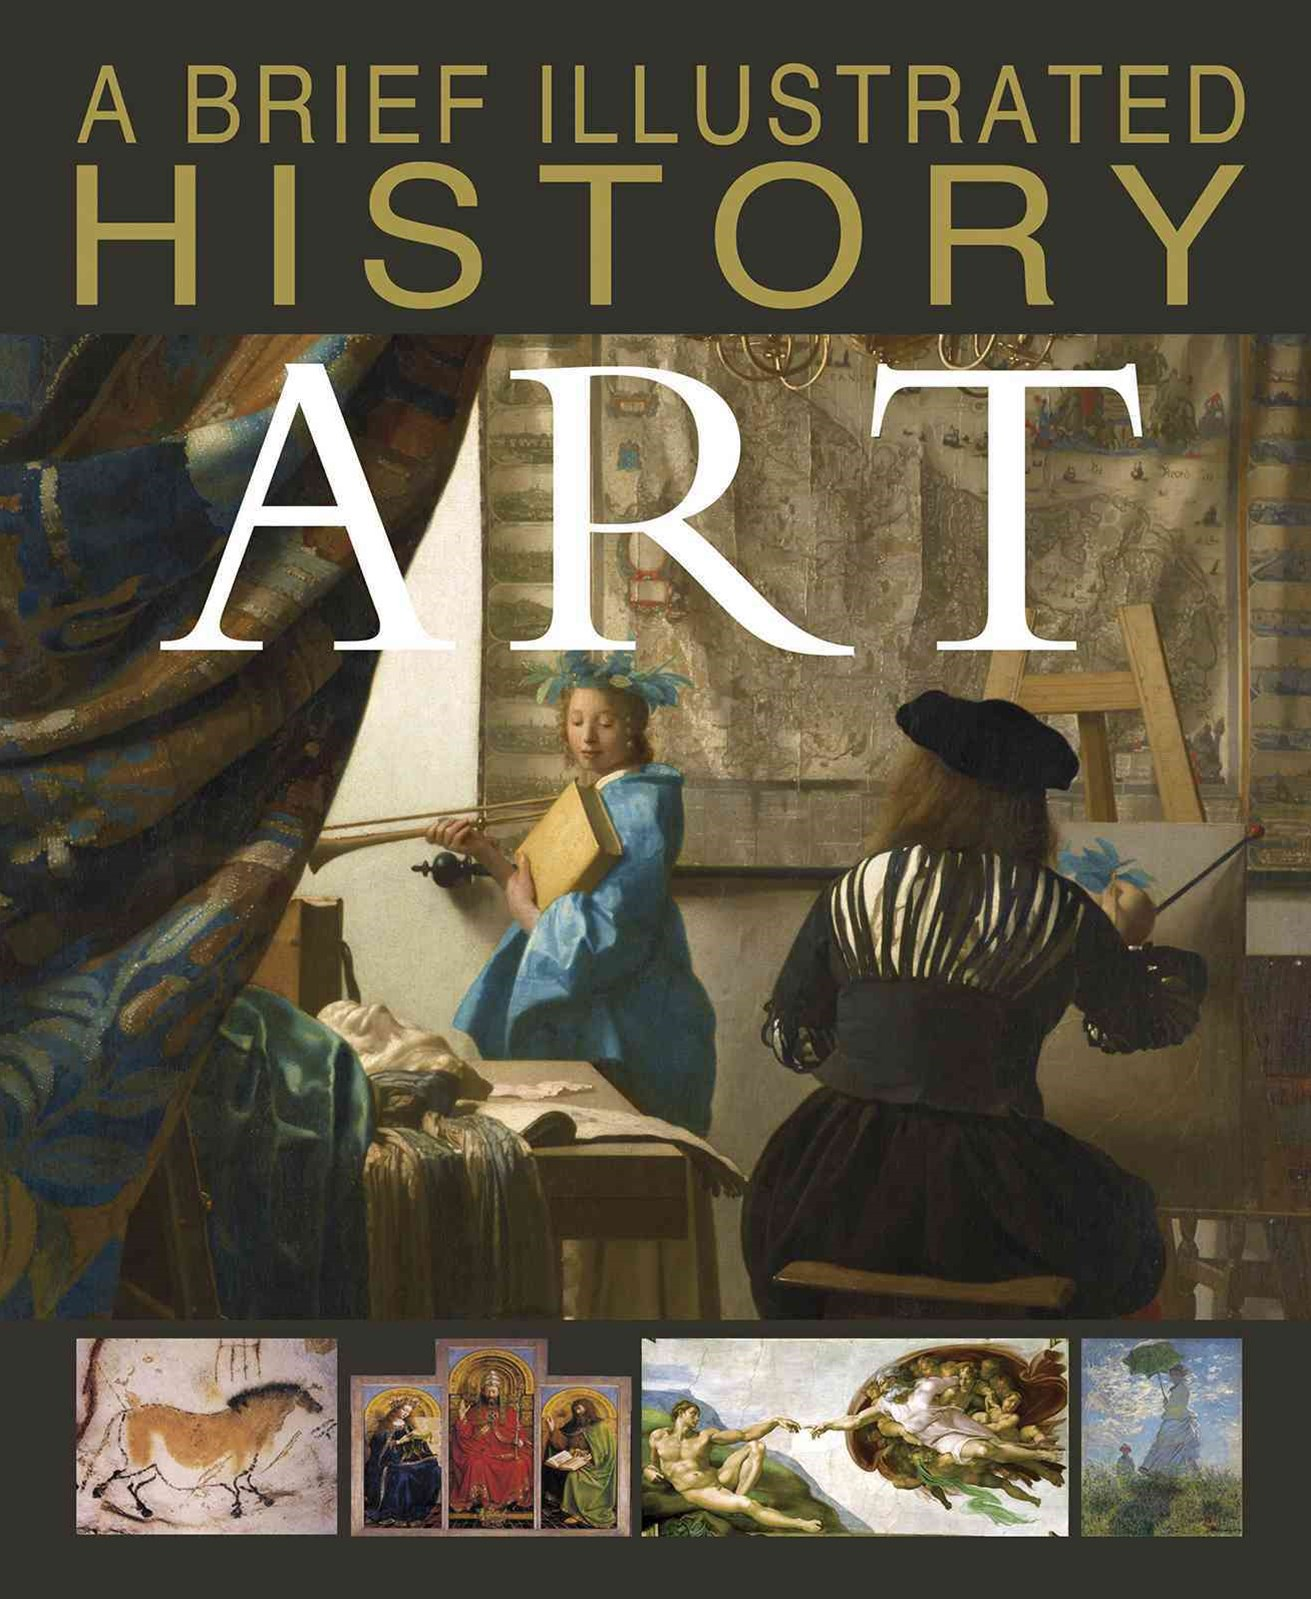 A Brief Illustrated History: Art